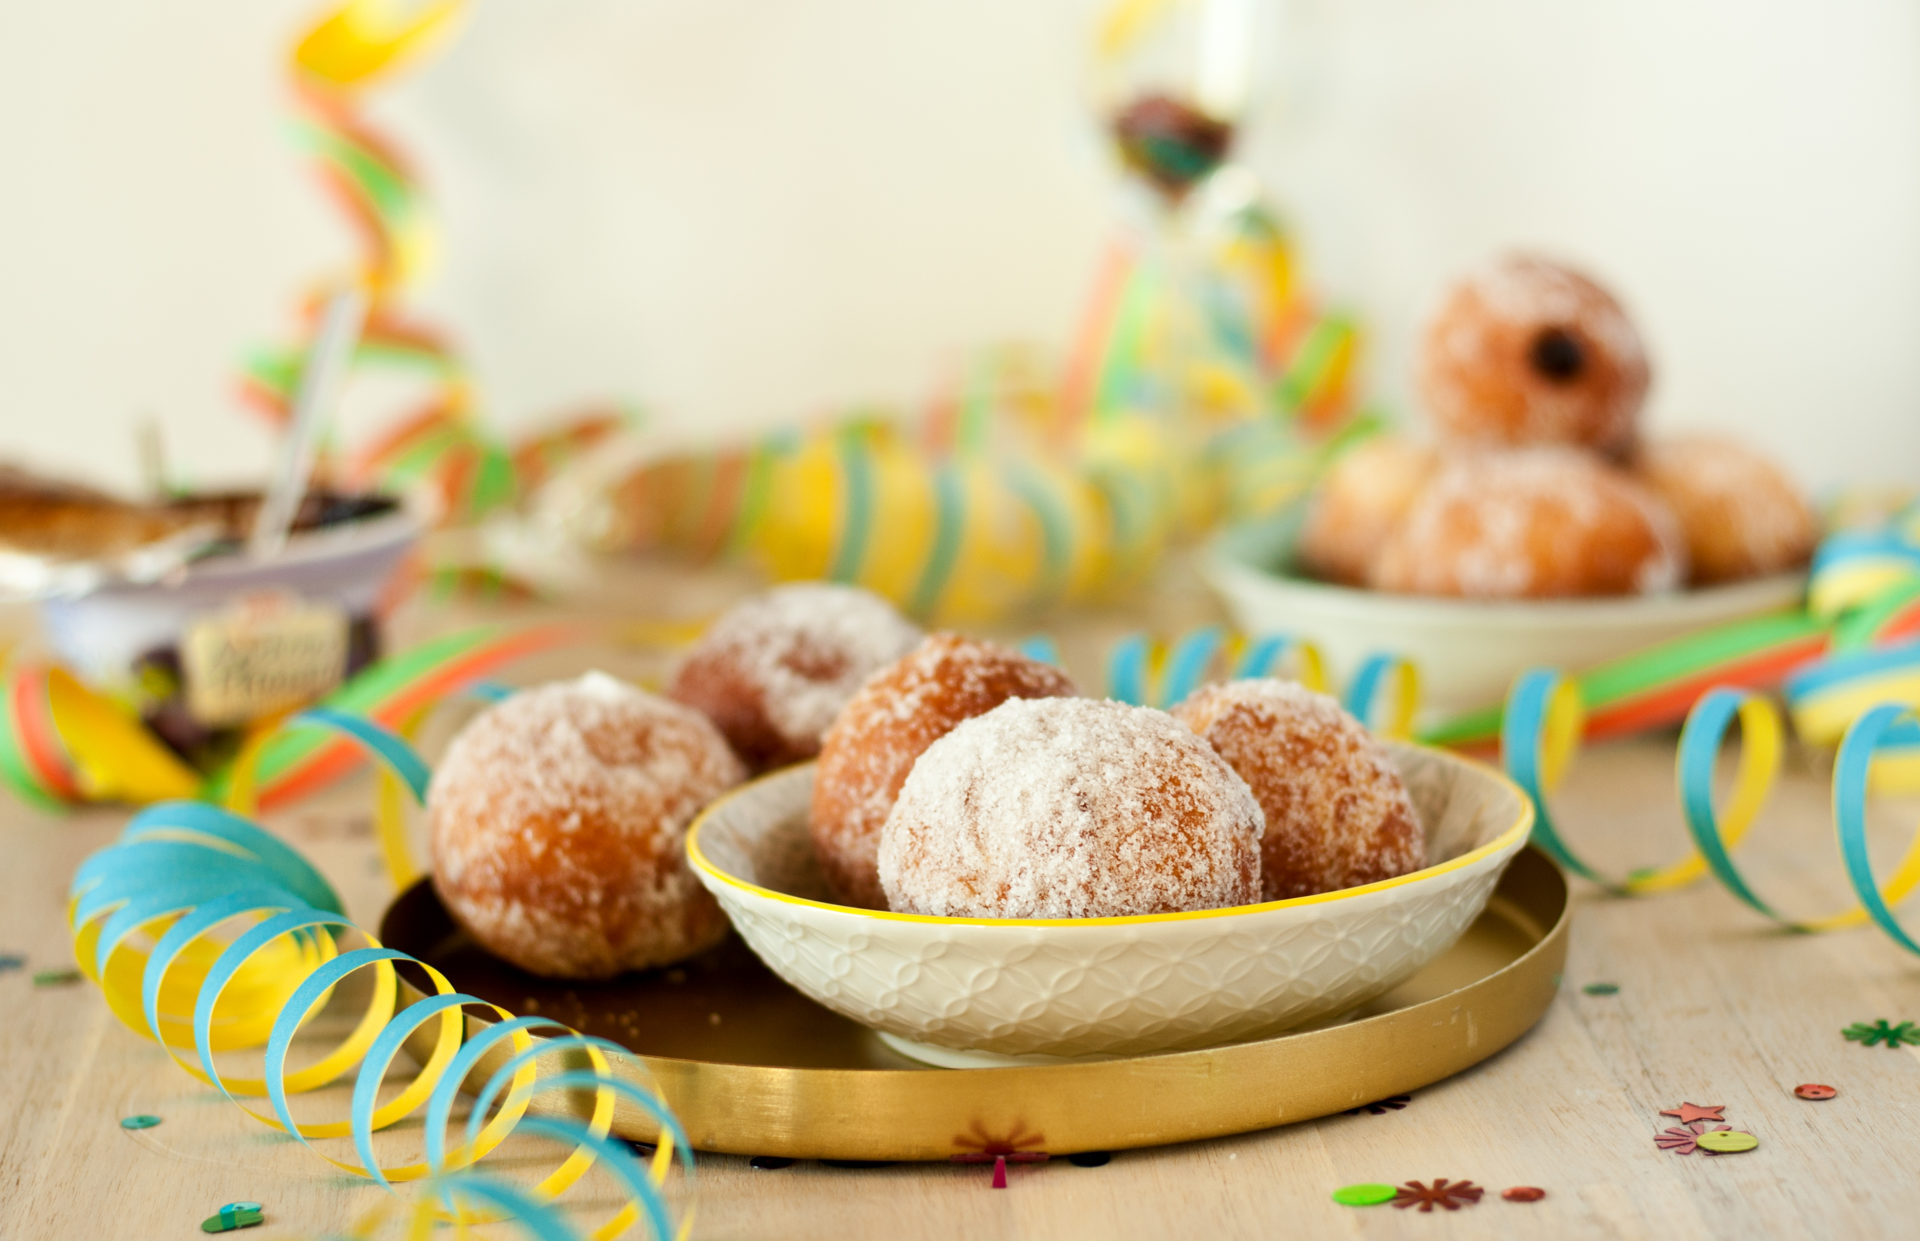 Berliner Pfannkuchen für Fasching // jelly filled donut for carnival by http://babyrockmyday.com/pfannkuchen/